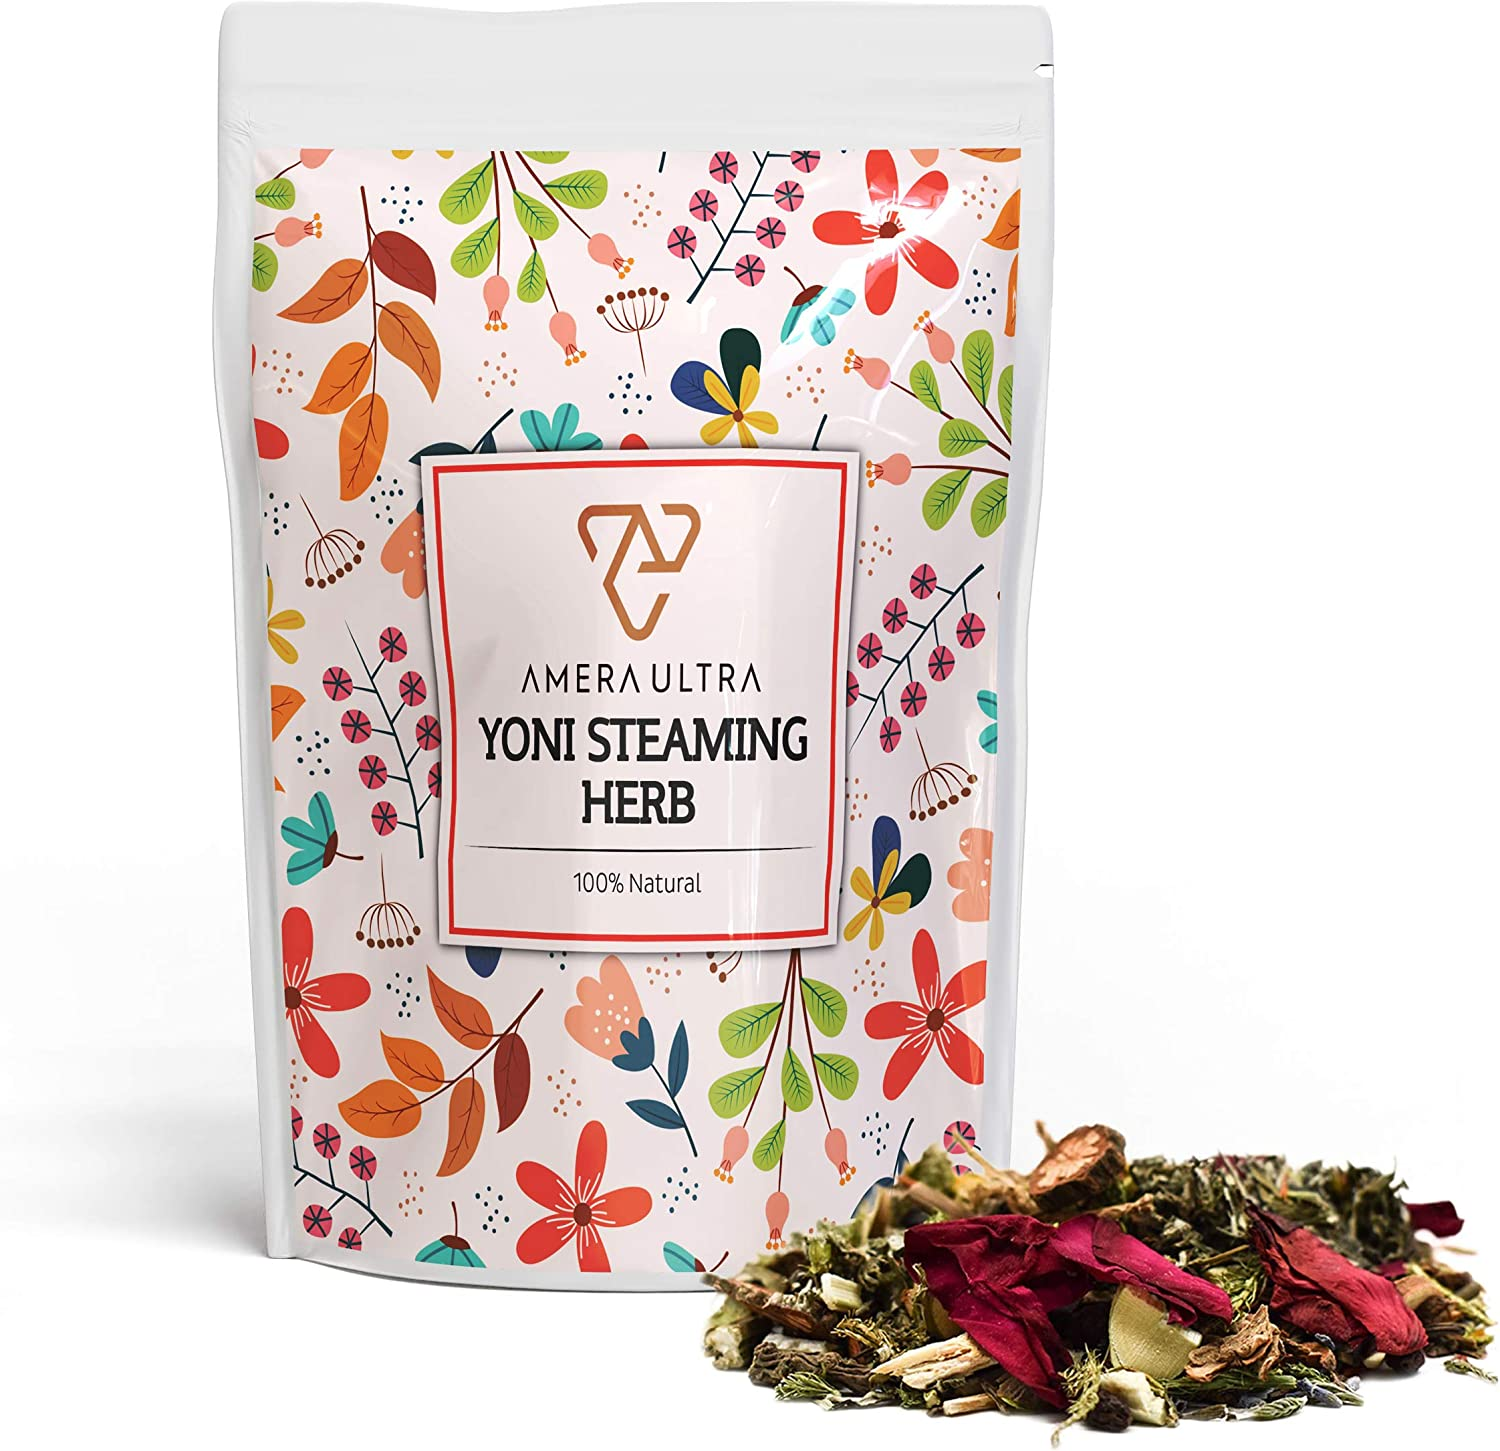 Yoni Steam Herbs for Cleansing Detox - Over 30 Yoni Steam Blend with Filter Bag - Natural Soothing Yoni Herbs for Steaming - Use at Home V Steam Vaginal Cleanse Blend for Menstrual Pain (4-8 Steams)